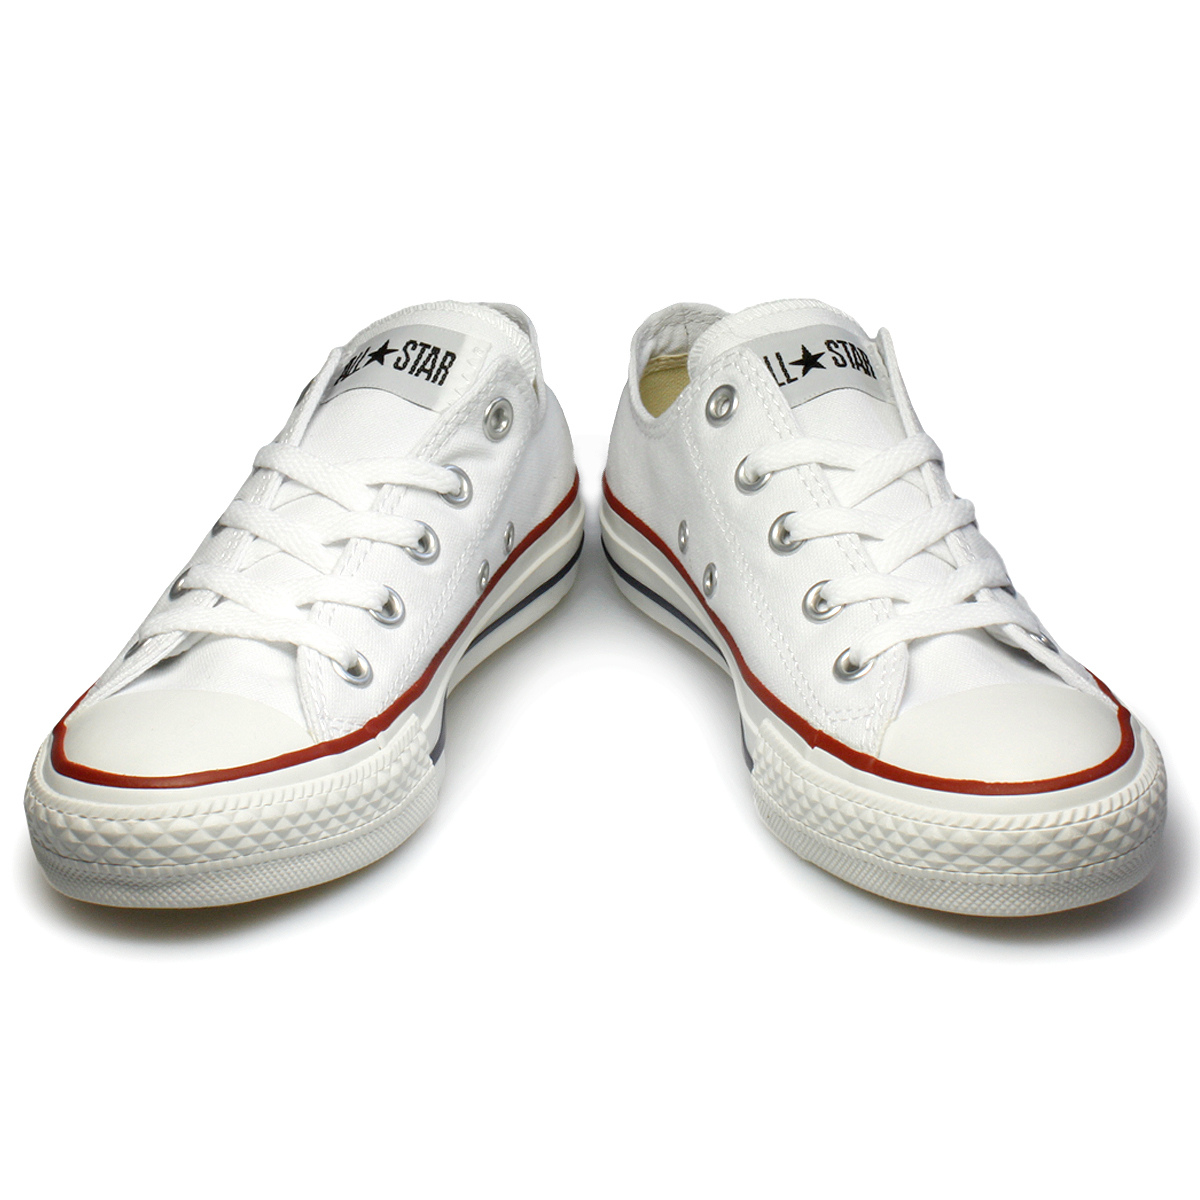 converse all star sale